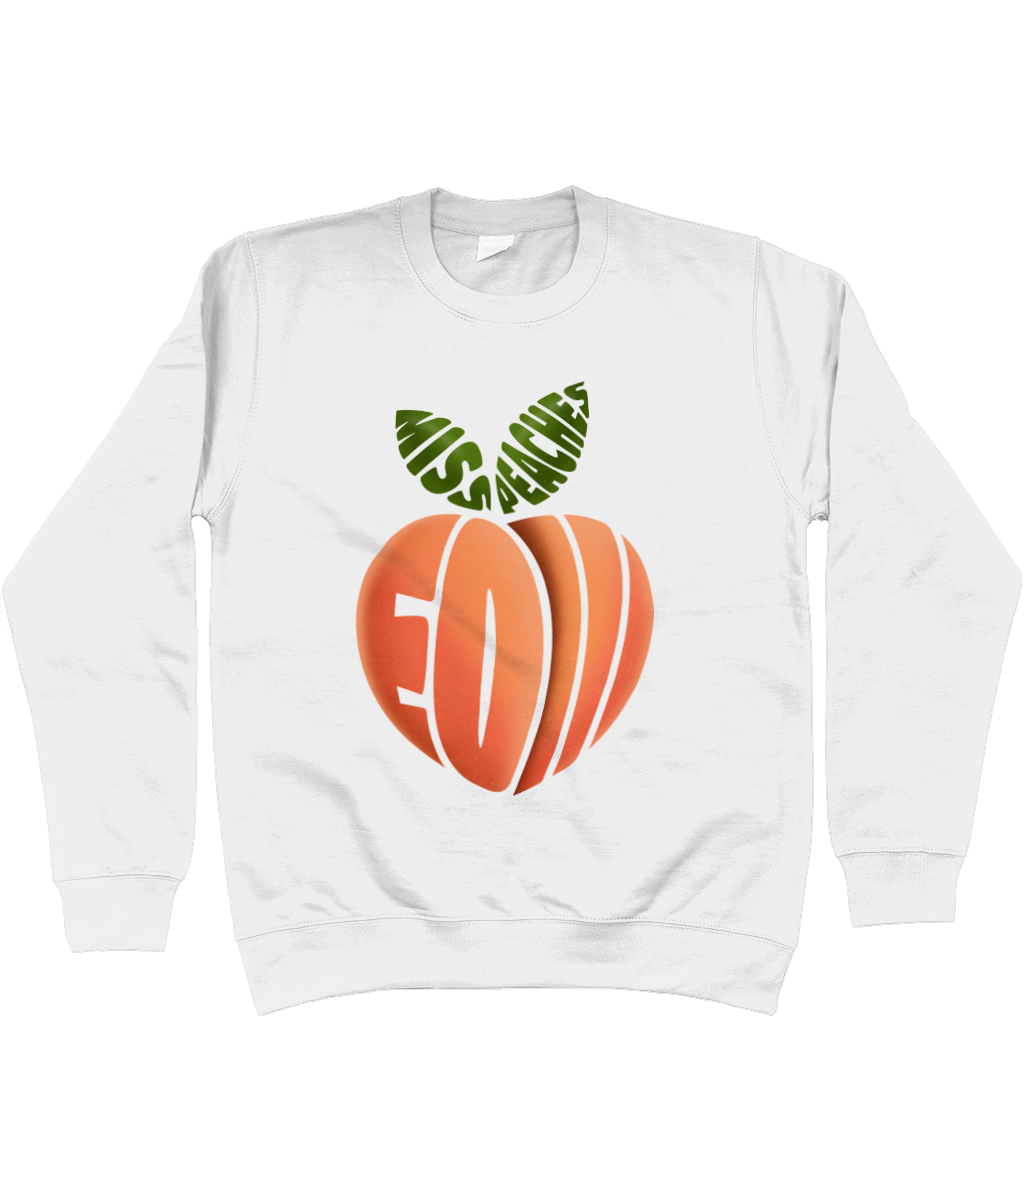 Miss Peaches - EOI Sweatshirt - SNATCHED